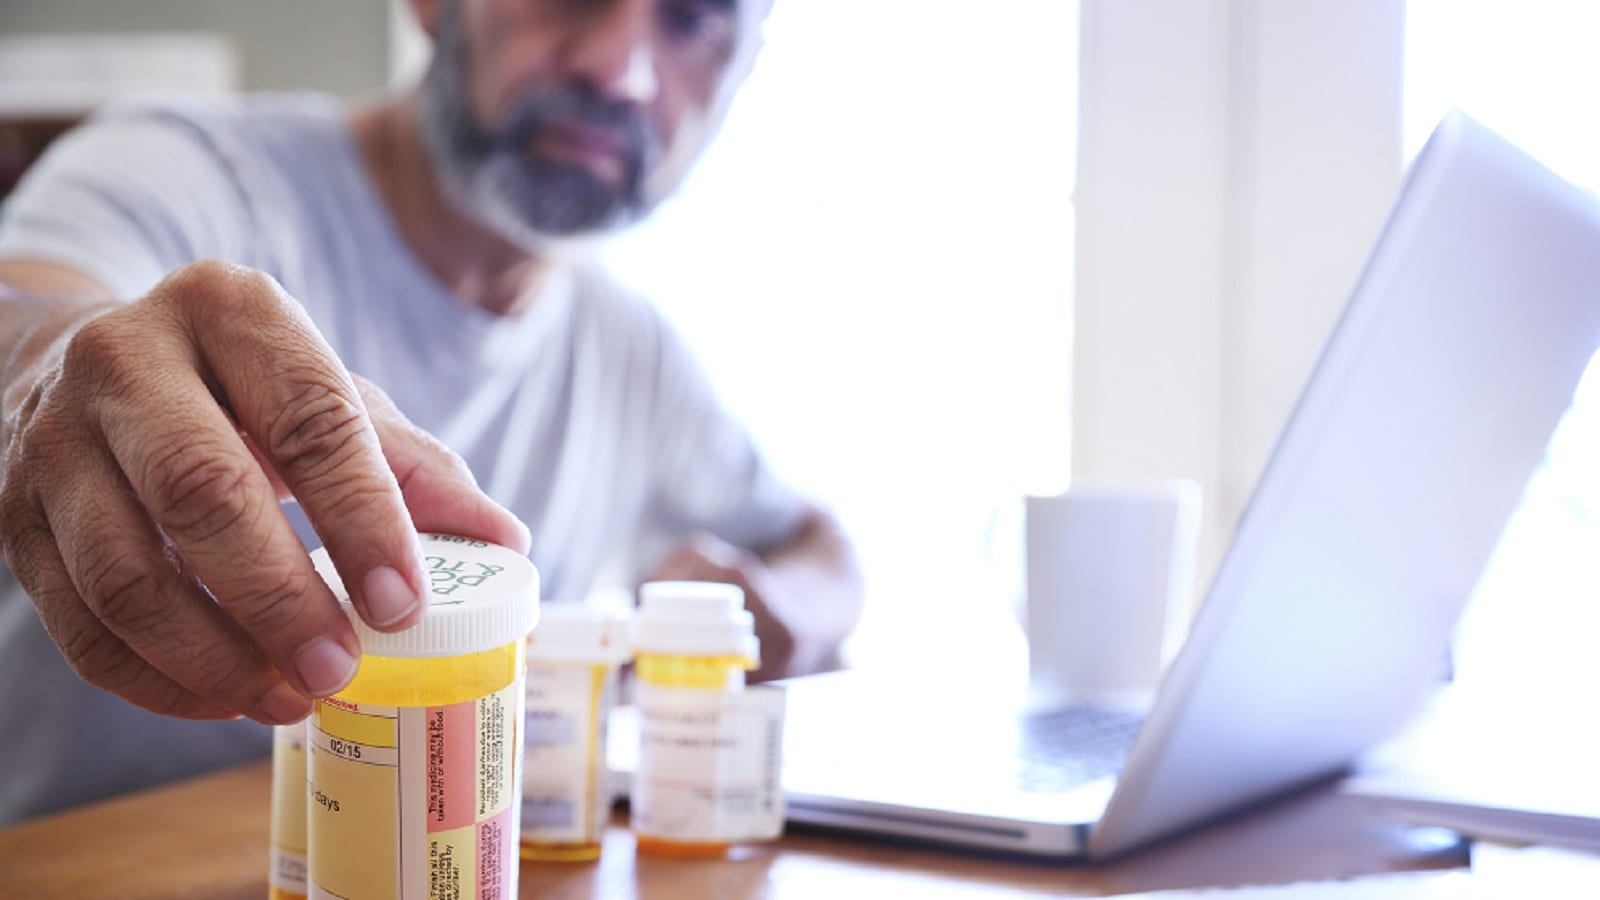 Mature Man Reaching For Prescription Pill Bottle